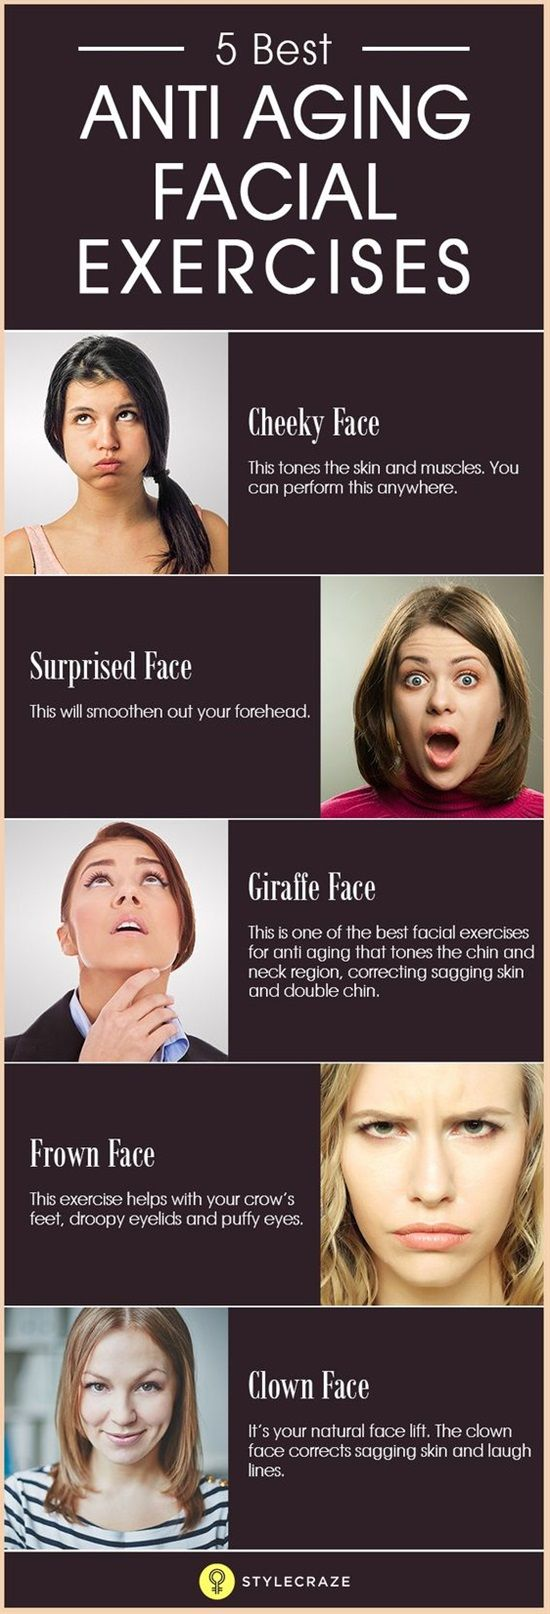 Best Anti Aging Facial Exercises